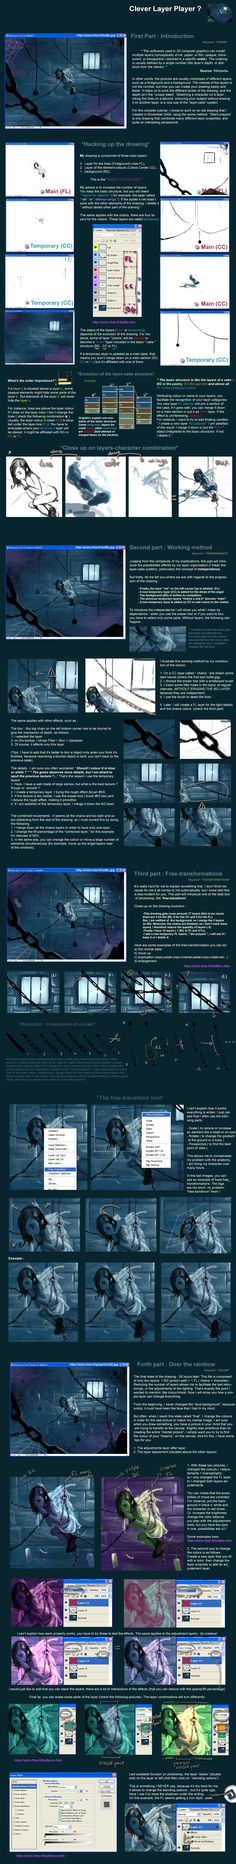 Tutorial 9 Clever layer player ? by AquaSixio on deviantART